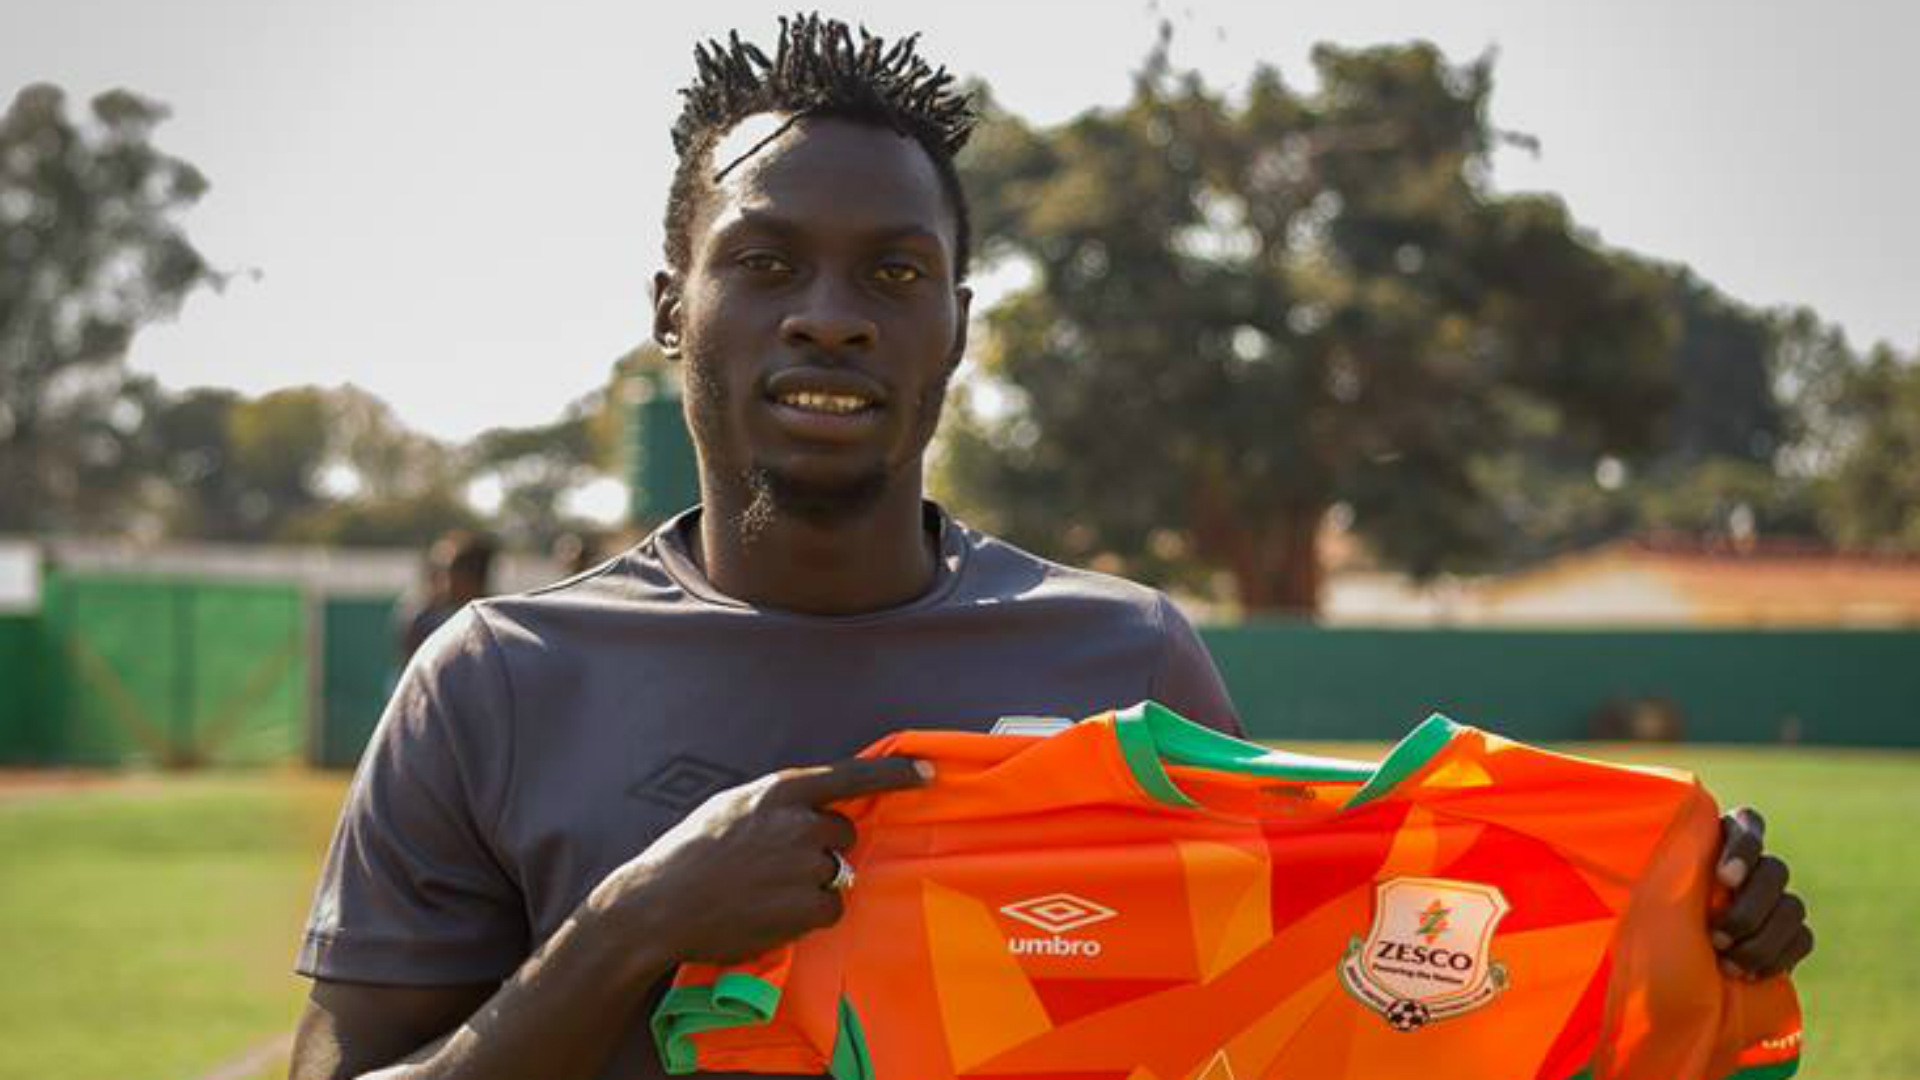 Zesco United striker Jesse Were